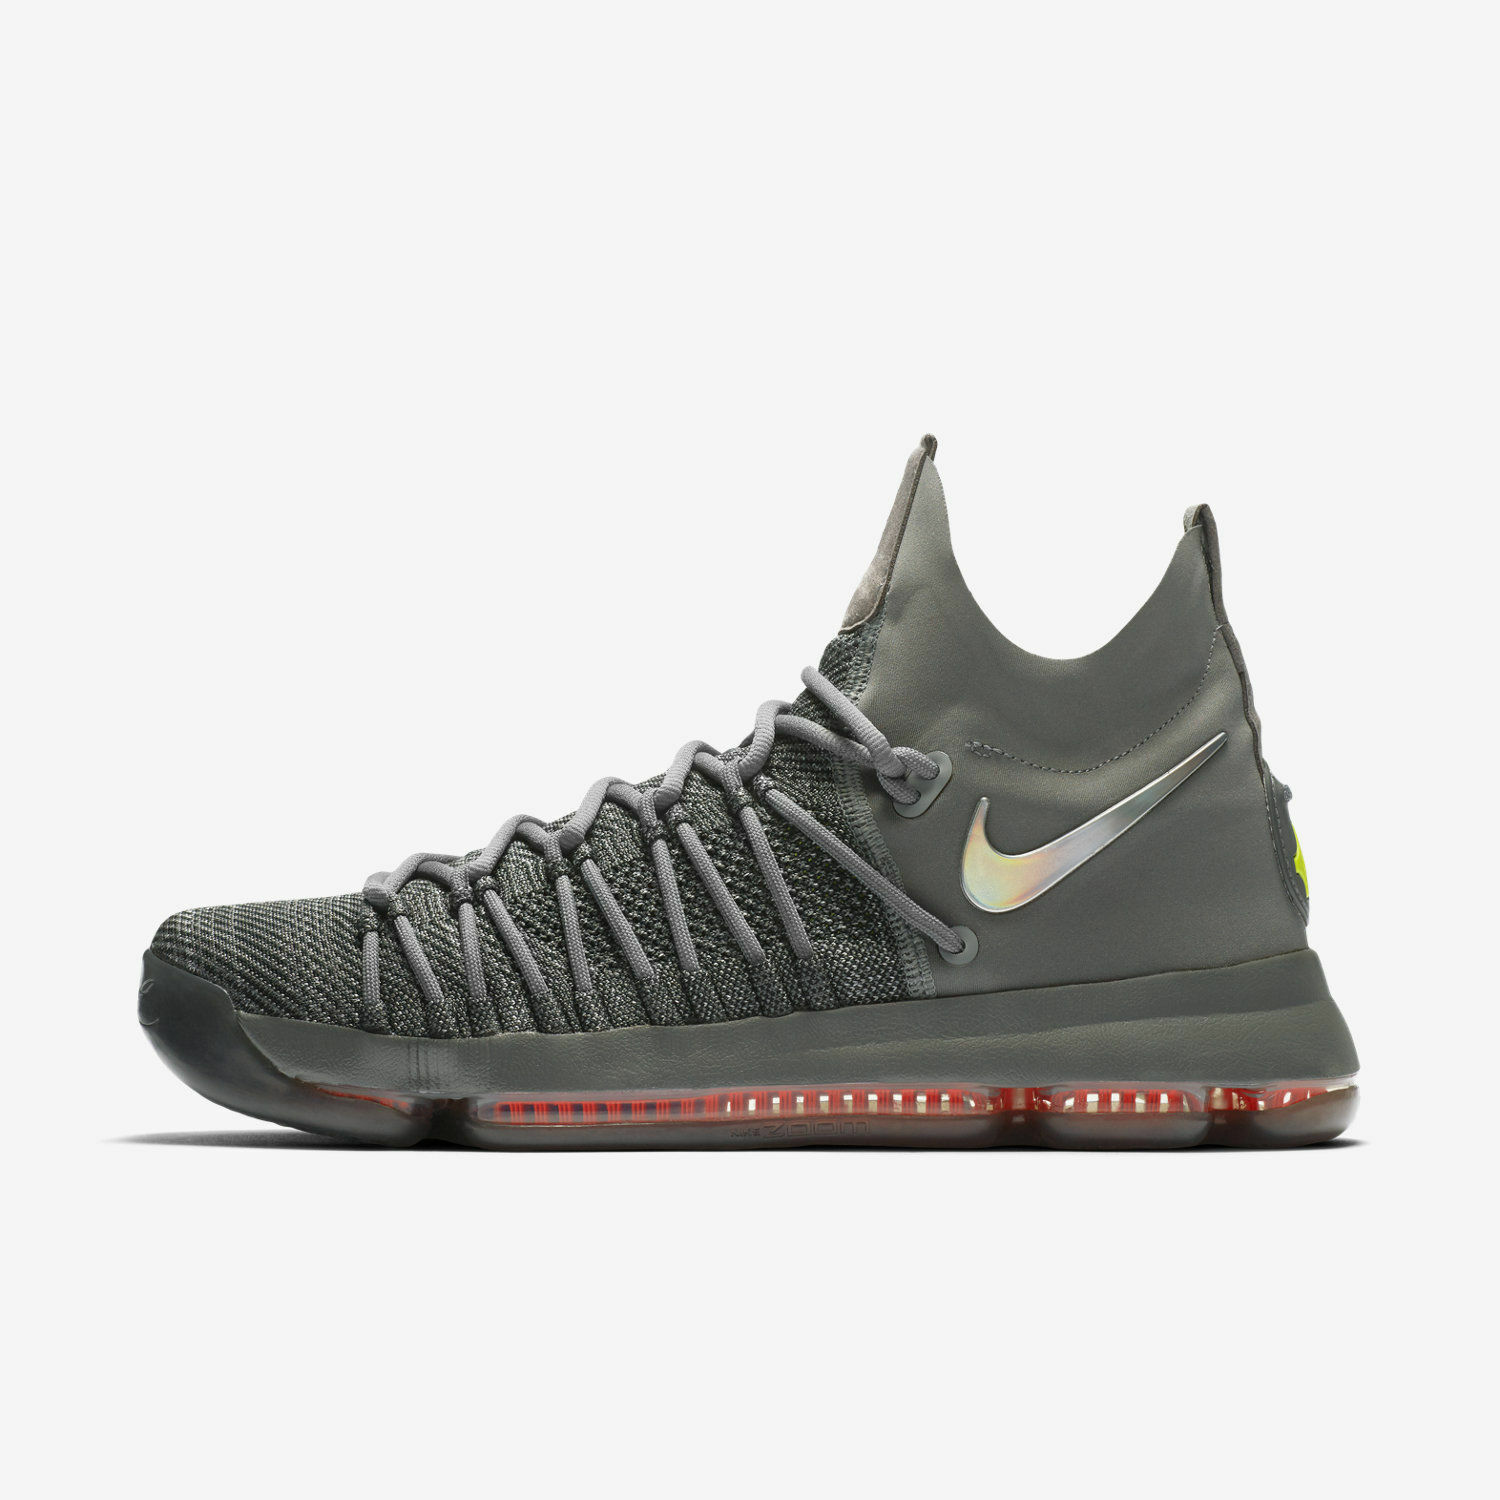 Nike Zoom KD 9 Elite TS size 12.5. Time to Shine. Kevin Durant. Grey 909139-013